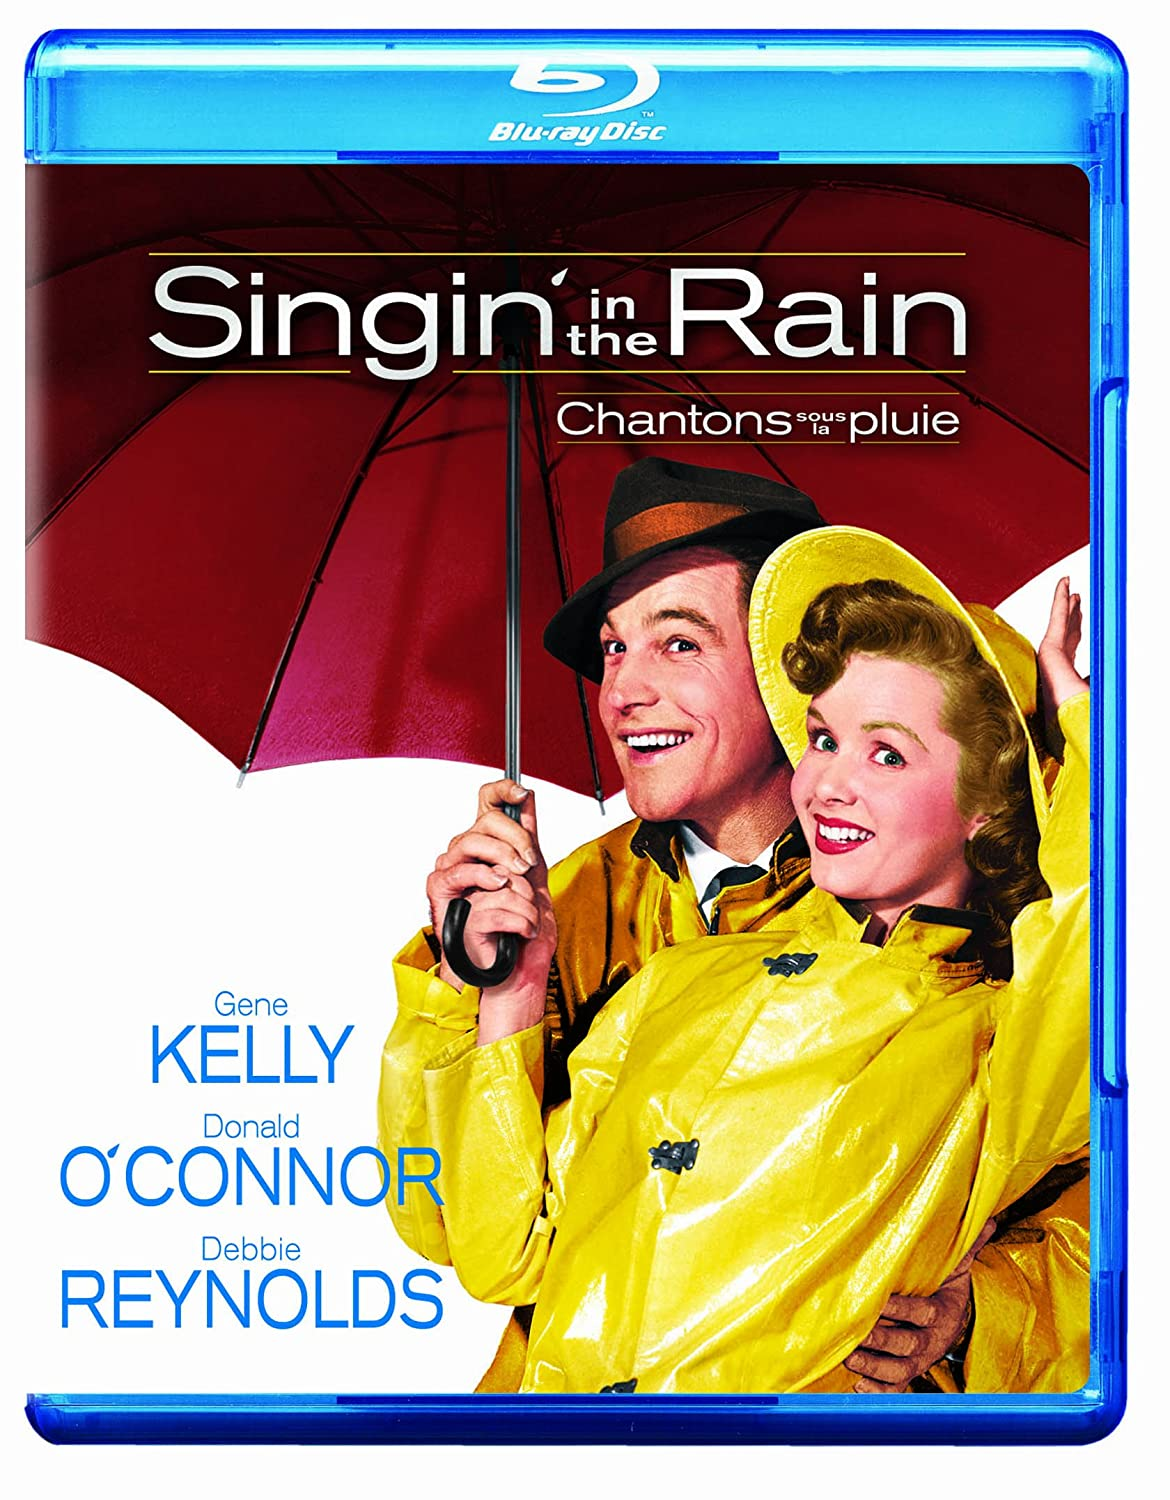 Singin' in the Rain: 60th Anniversary Special Edition / Chantons sous la pluie : Édition Spéciale de 60e Anniversaire (Bilingual) [Blu-ray] Donald O' connor Debbie Reynolds Gene Kelly Stanley Donen